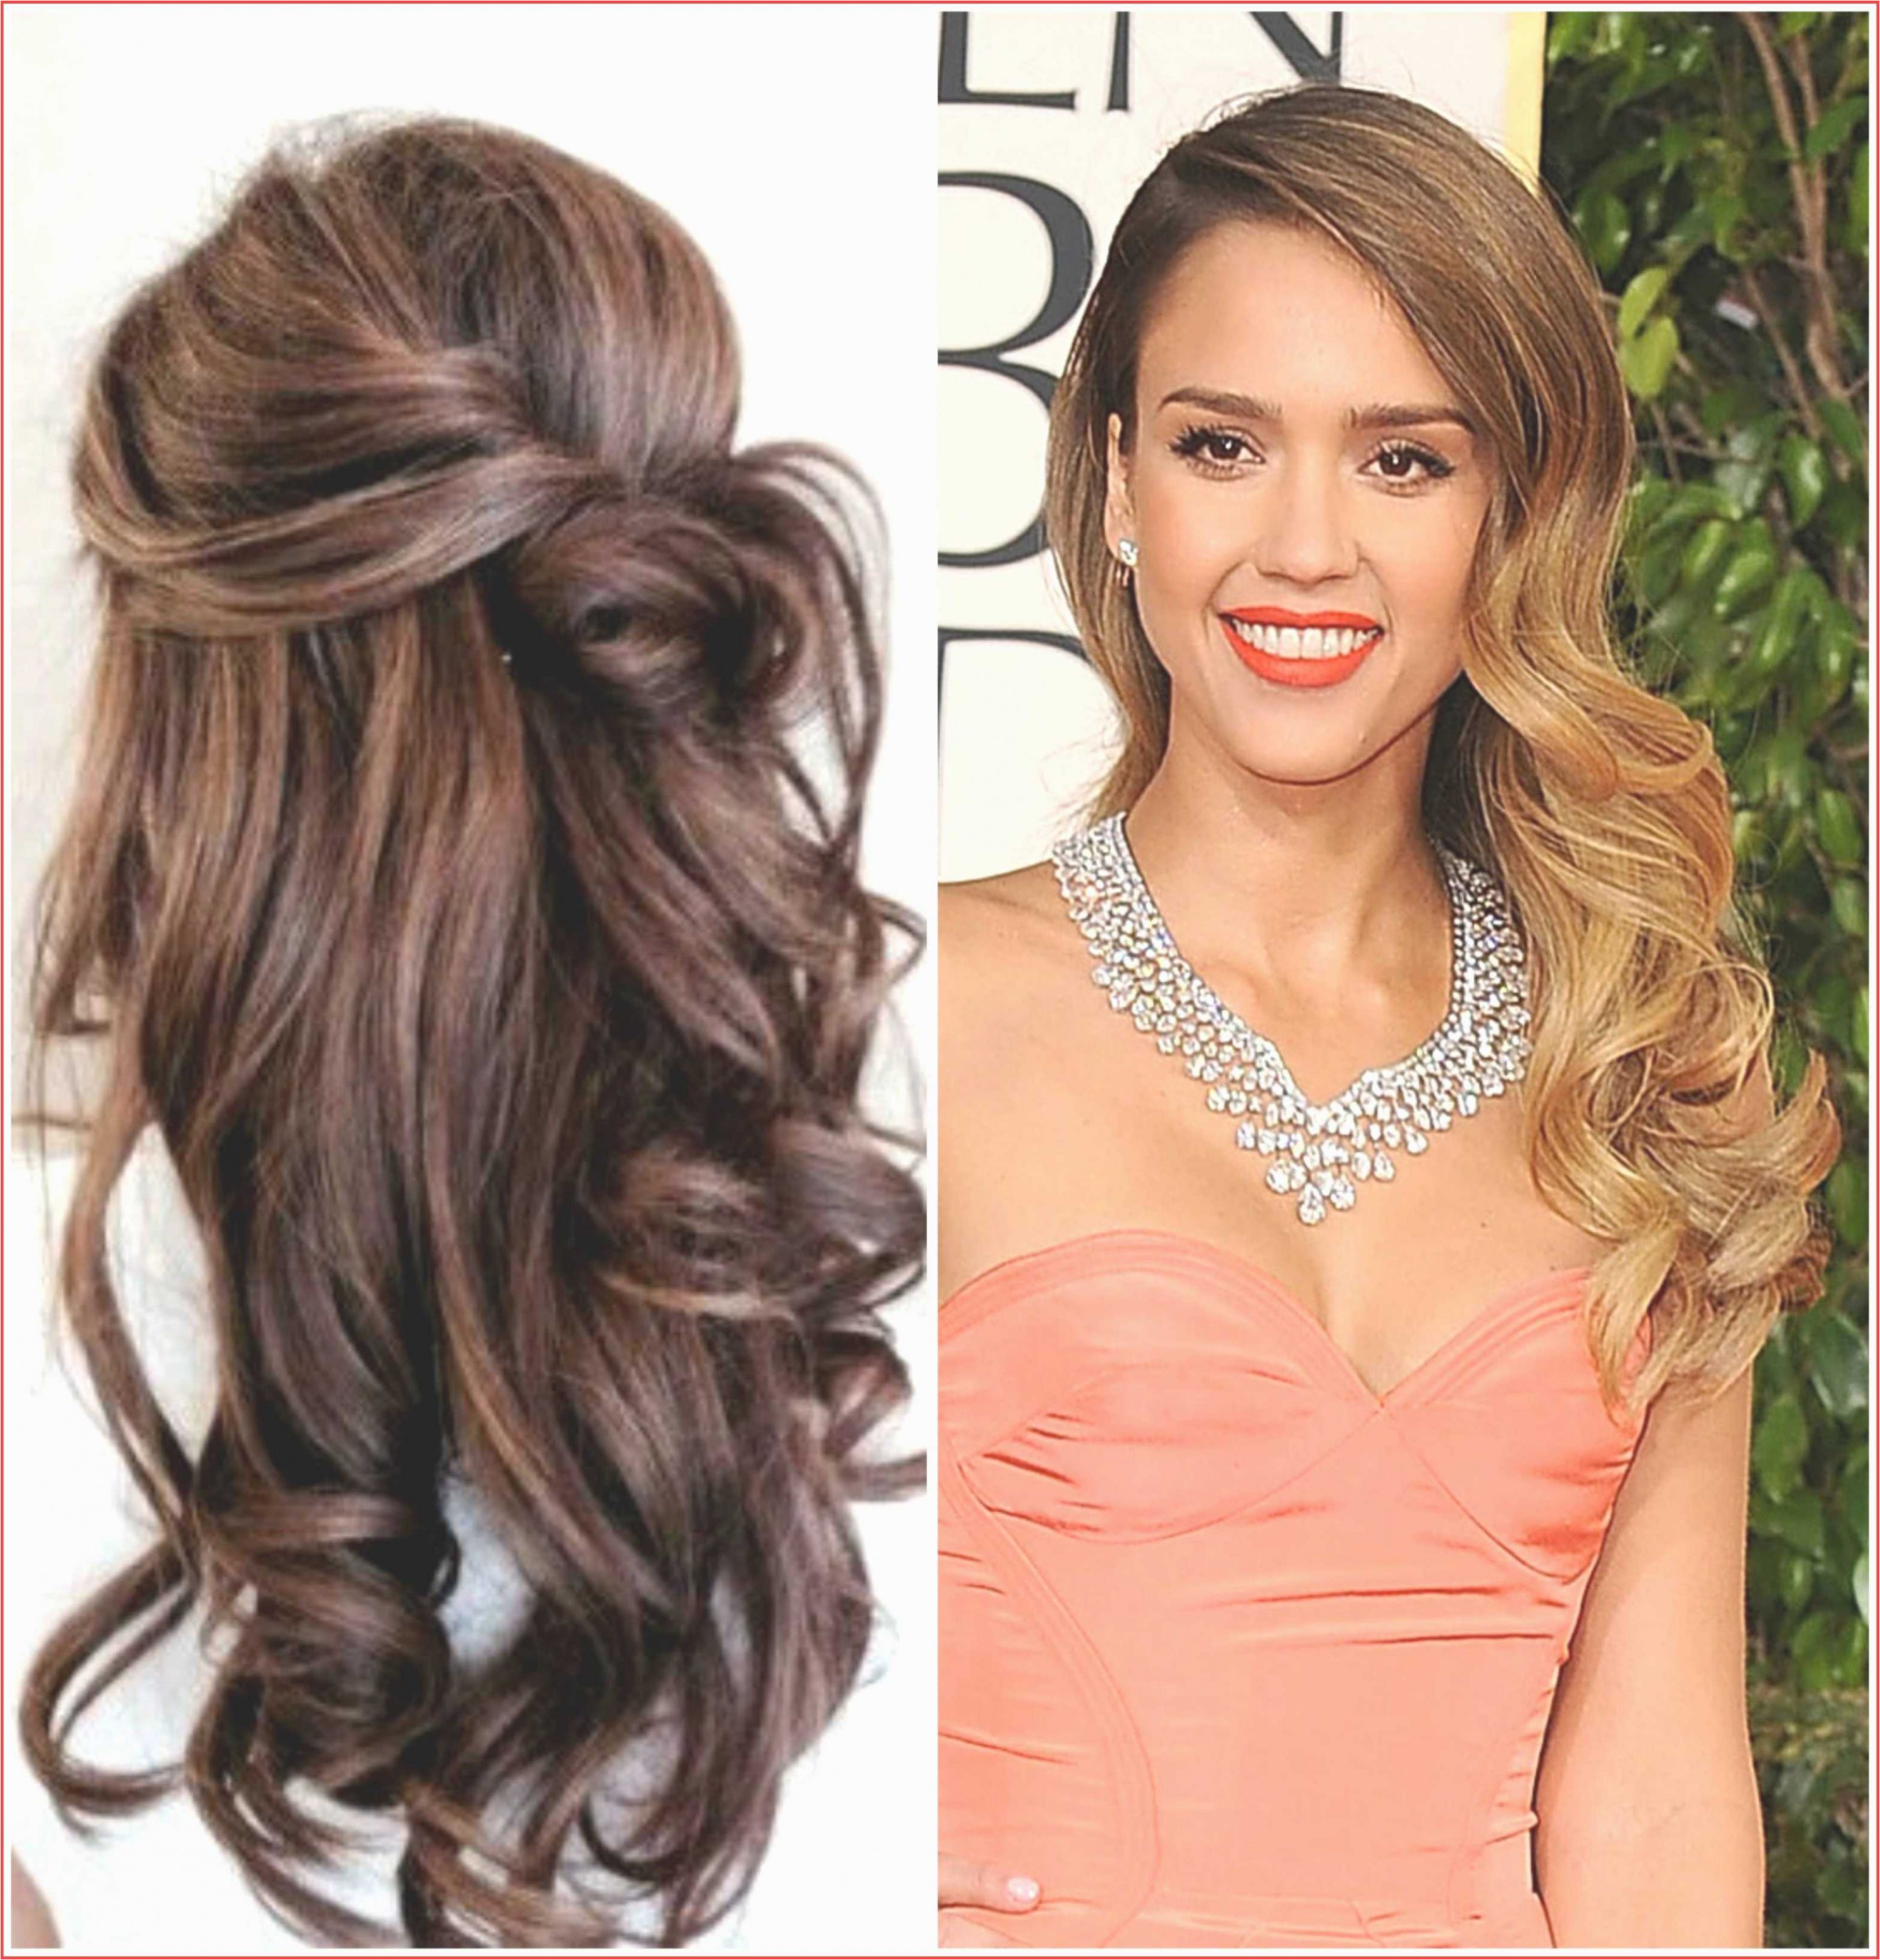 Hairstyles for School Shoulder Length Hair Cool Hairstyles for School Girls Inspirational Medium Haircuts